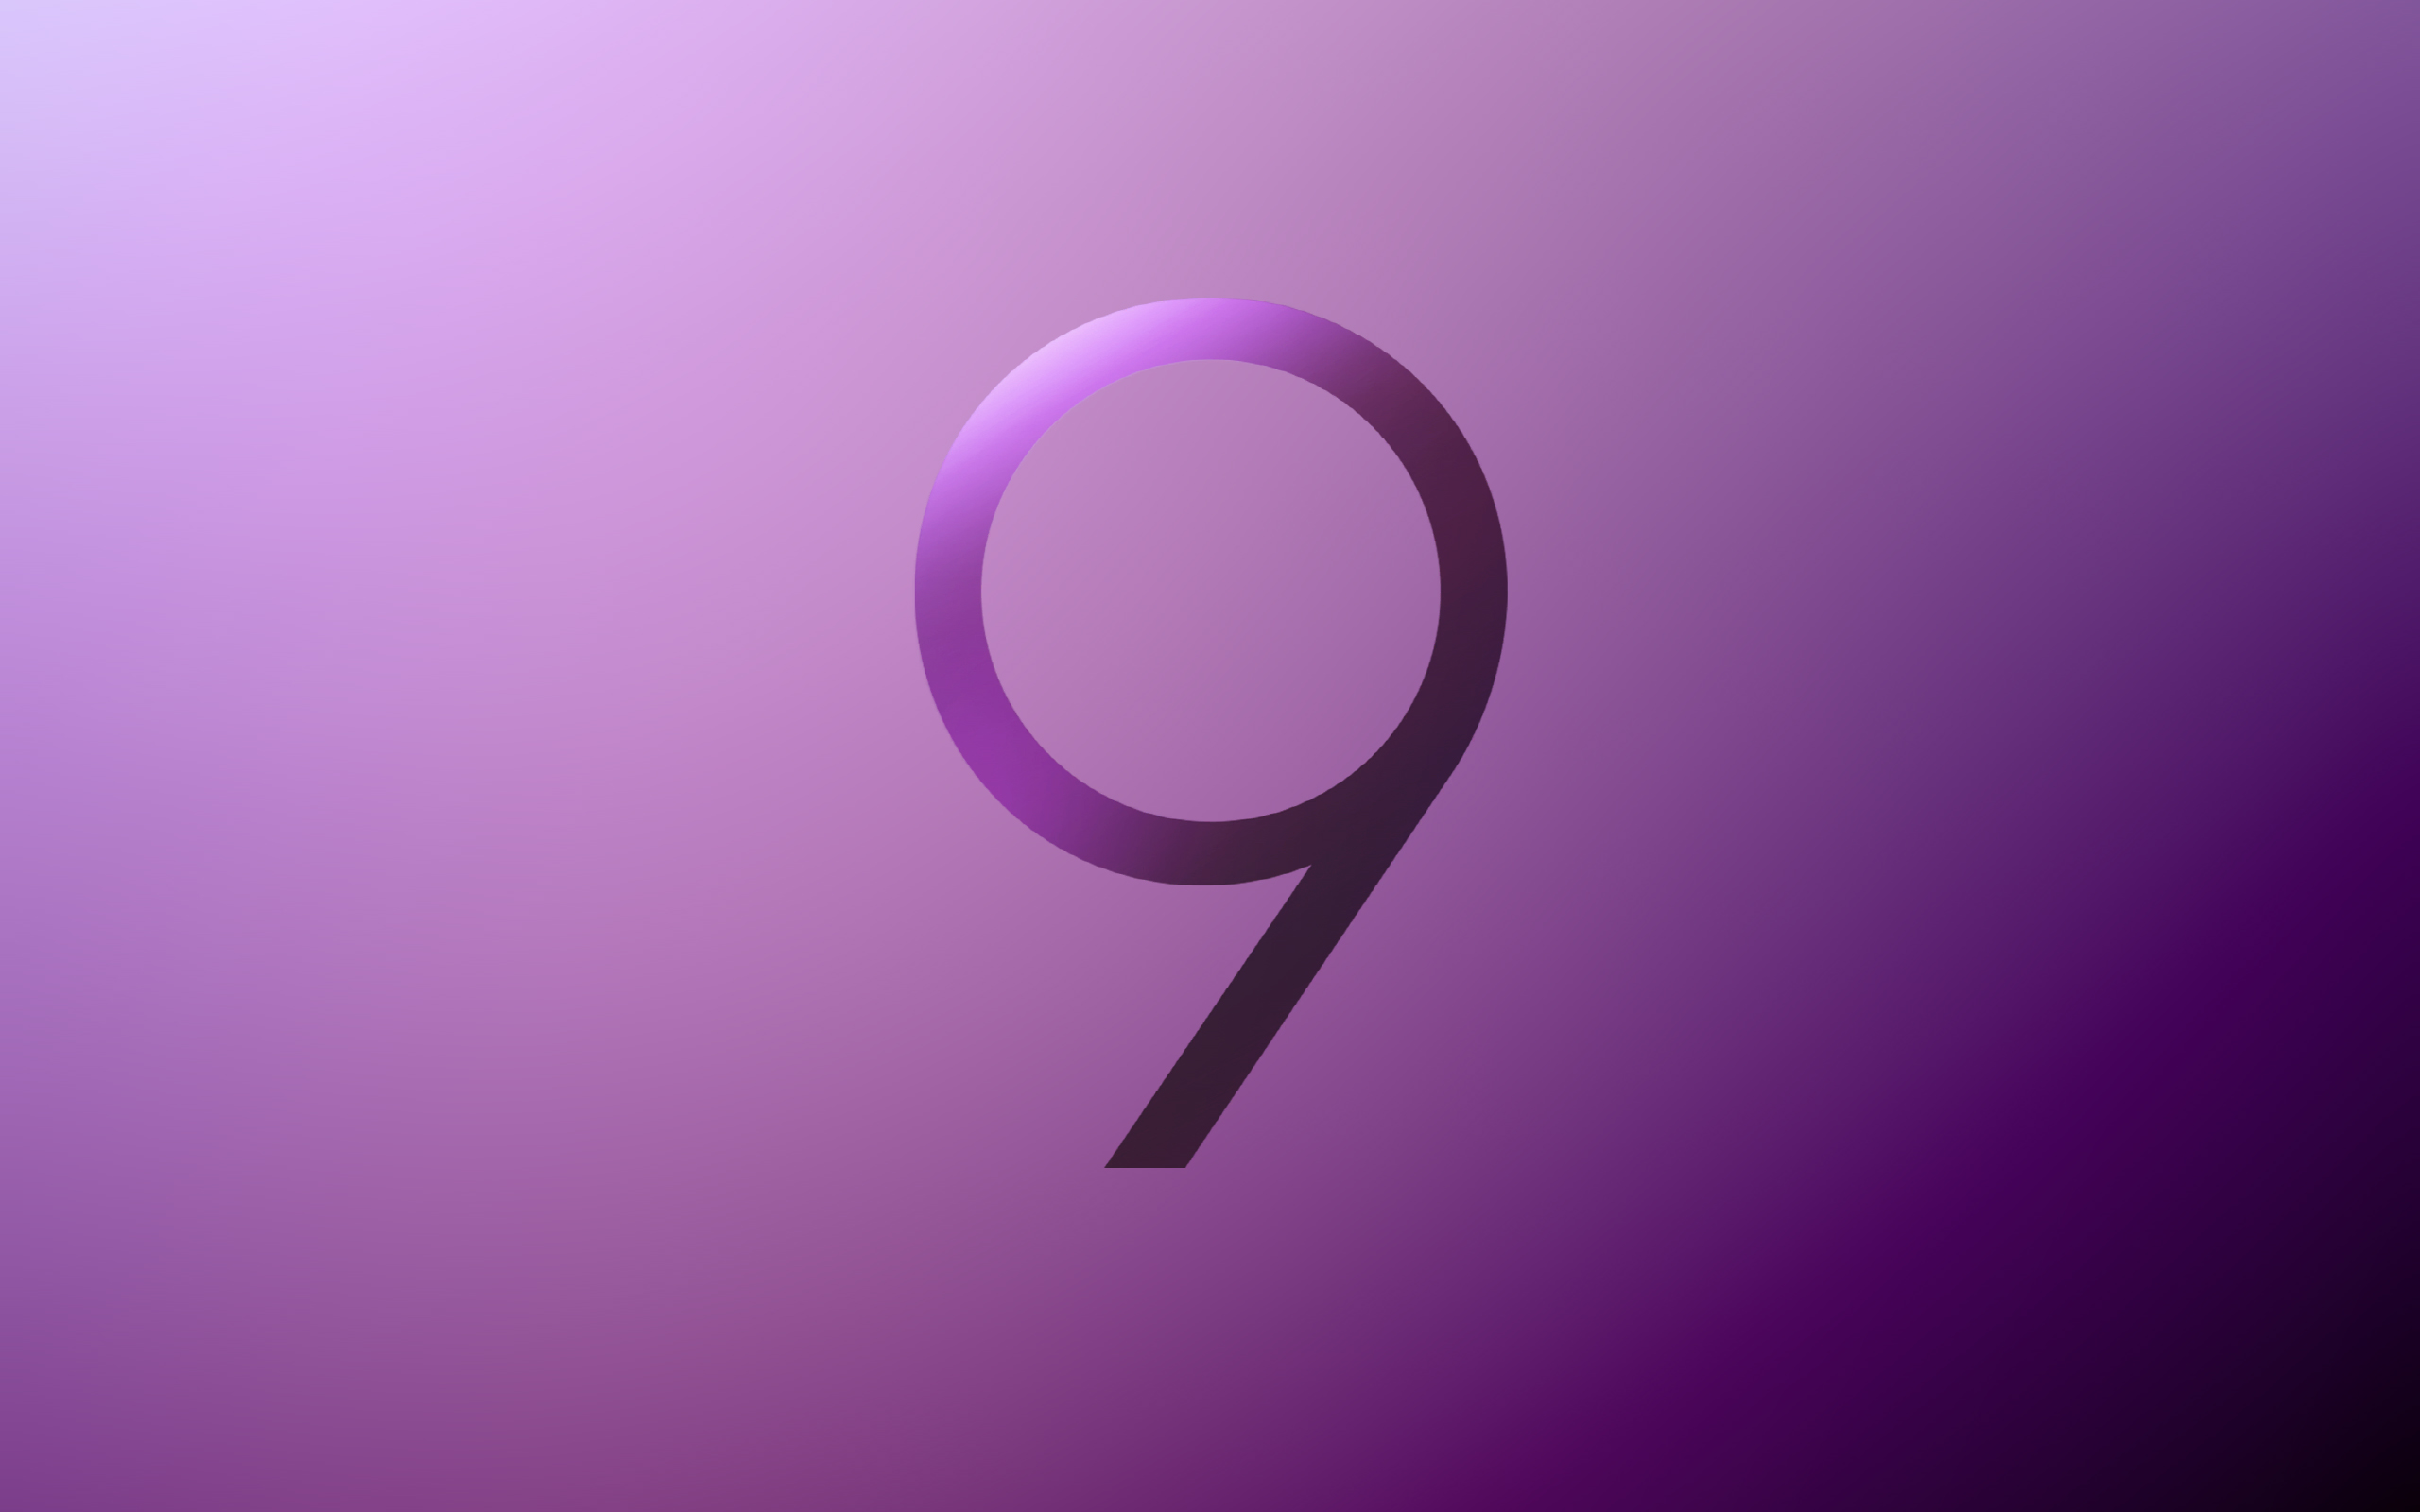 Samsung Galaxy S9 Stock Purple Wallpaper Download High Resolution 4k Wallpaper